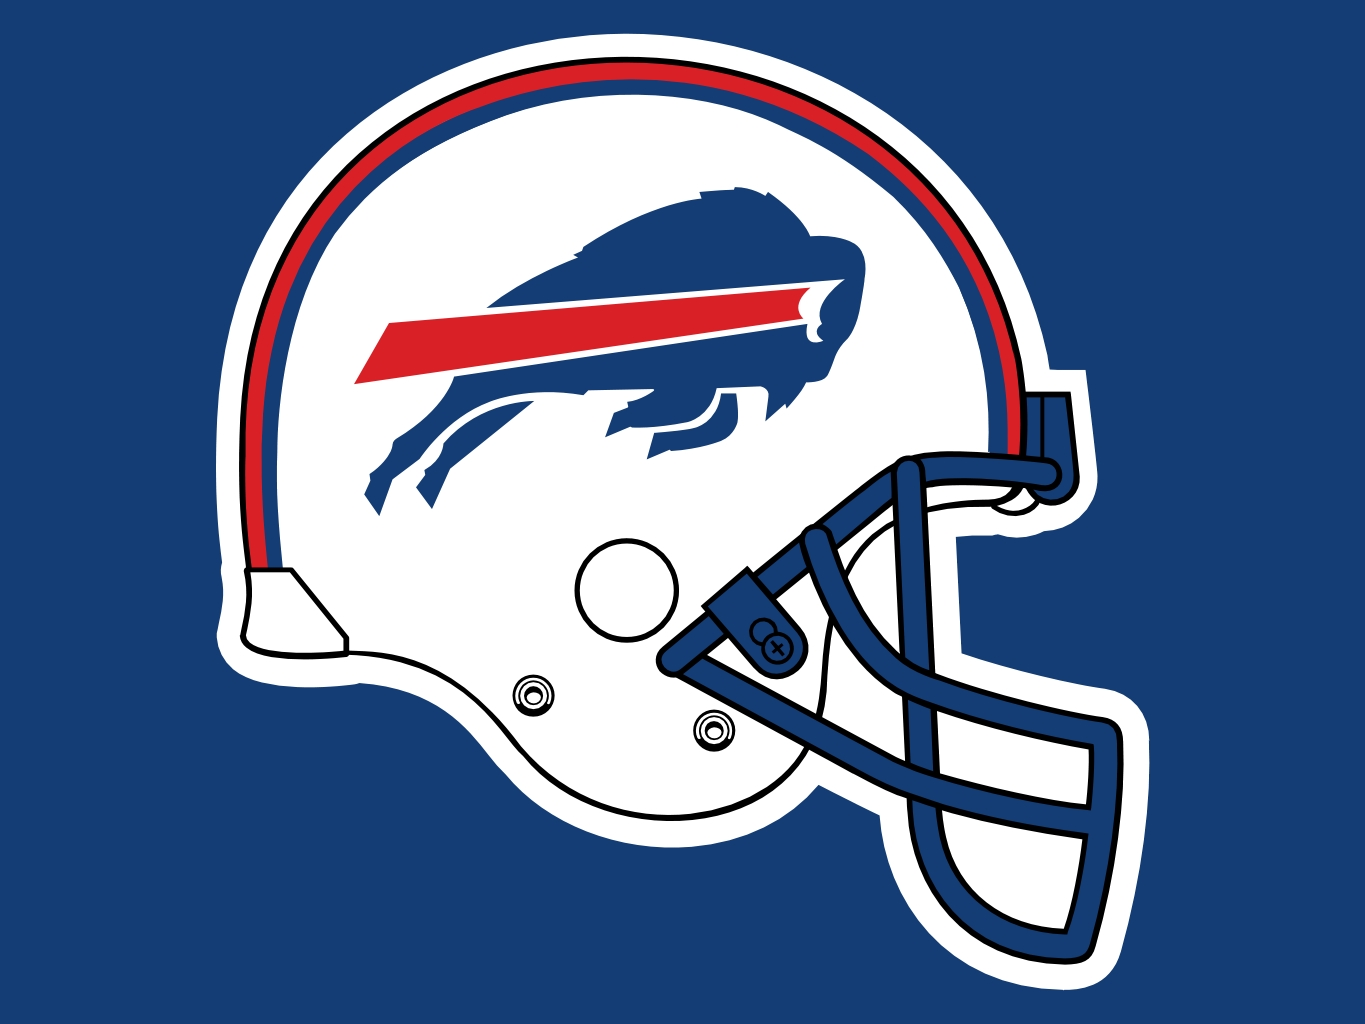 1365x1024px Buffalo Bills 274.9 KB #199233.